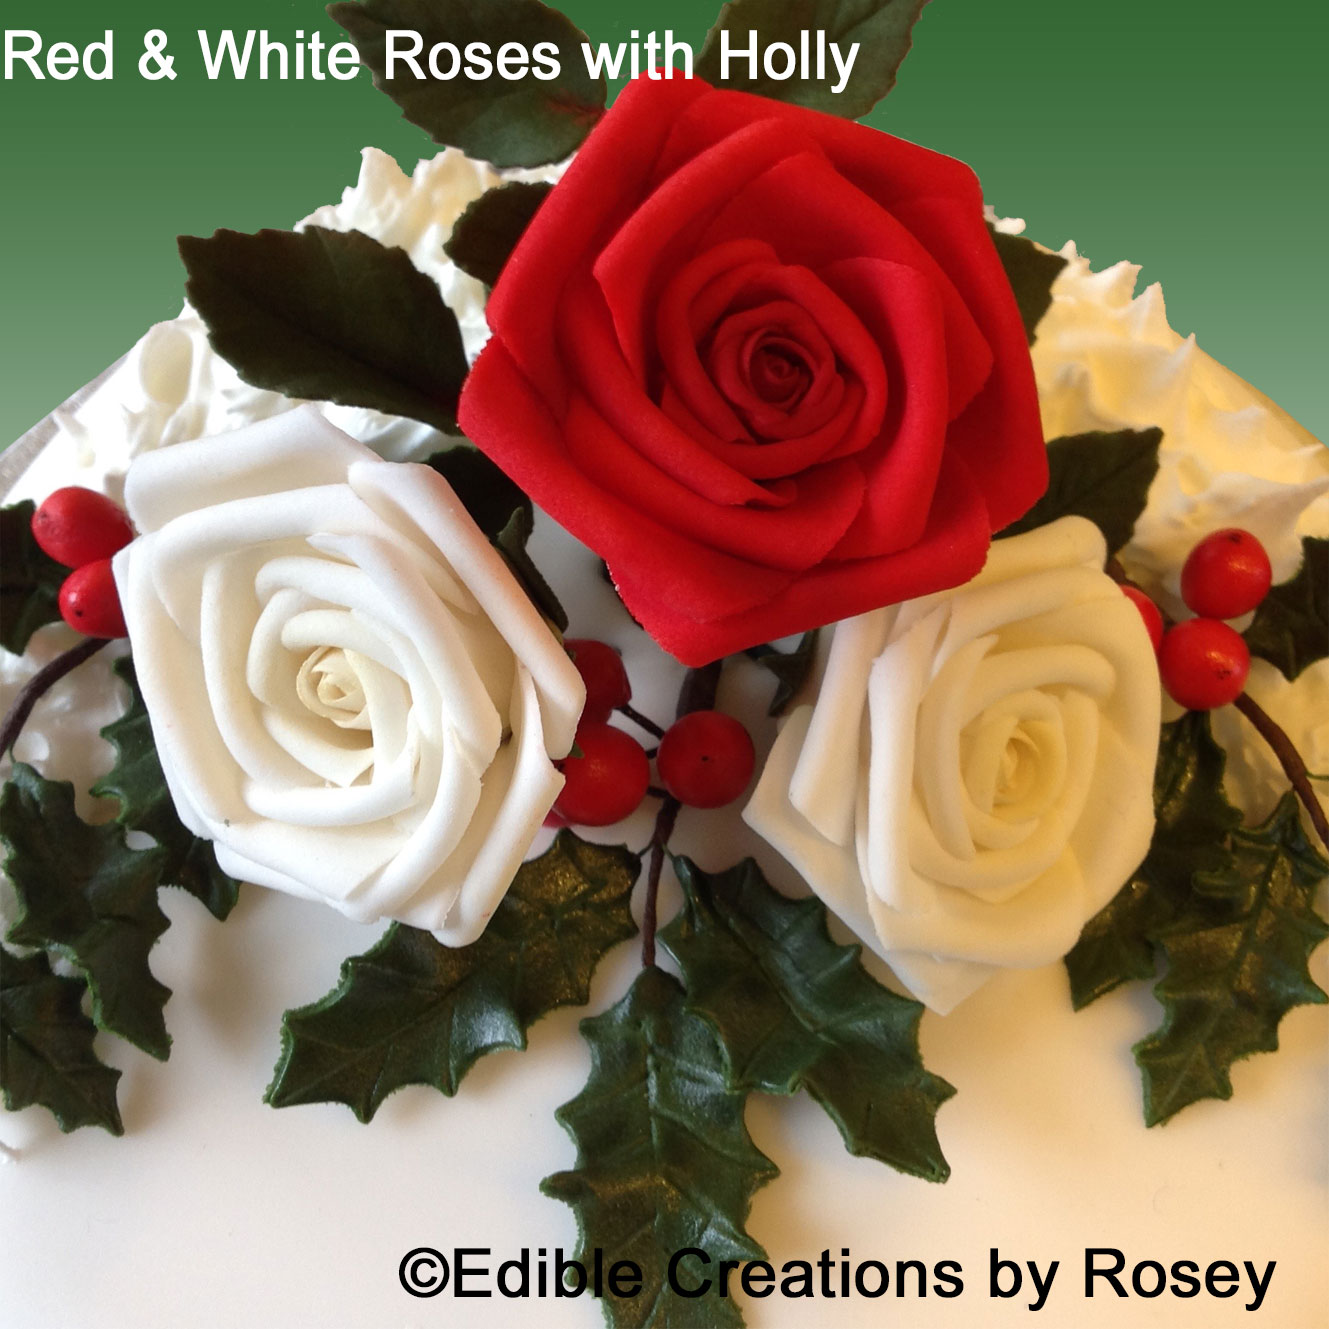 Red & white roses with holly